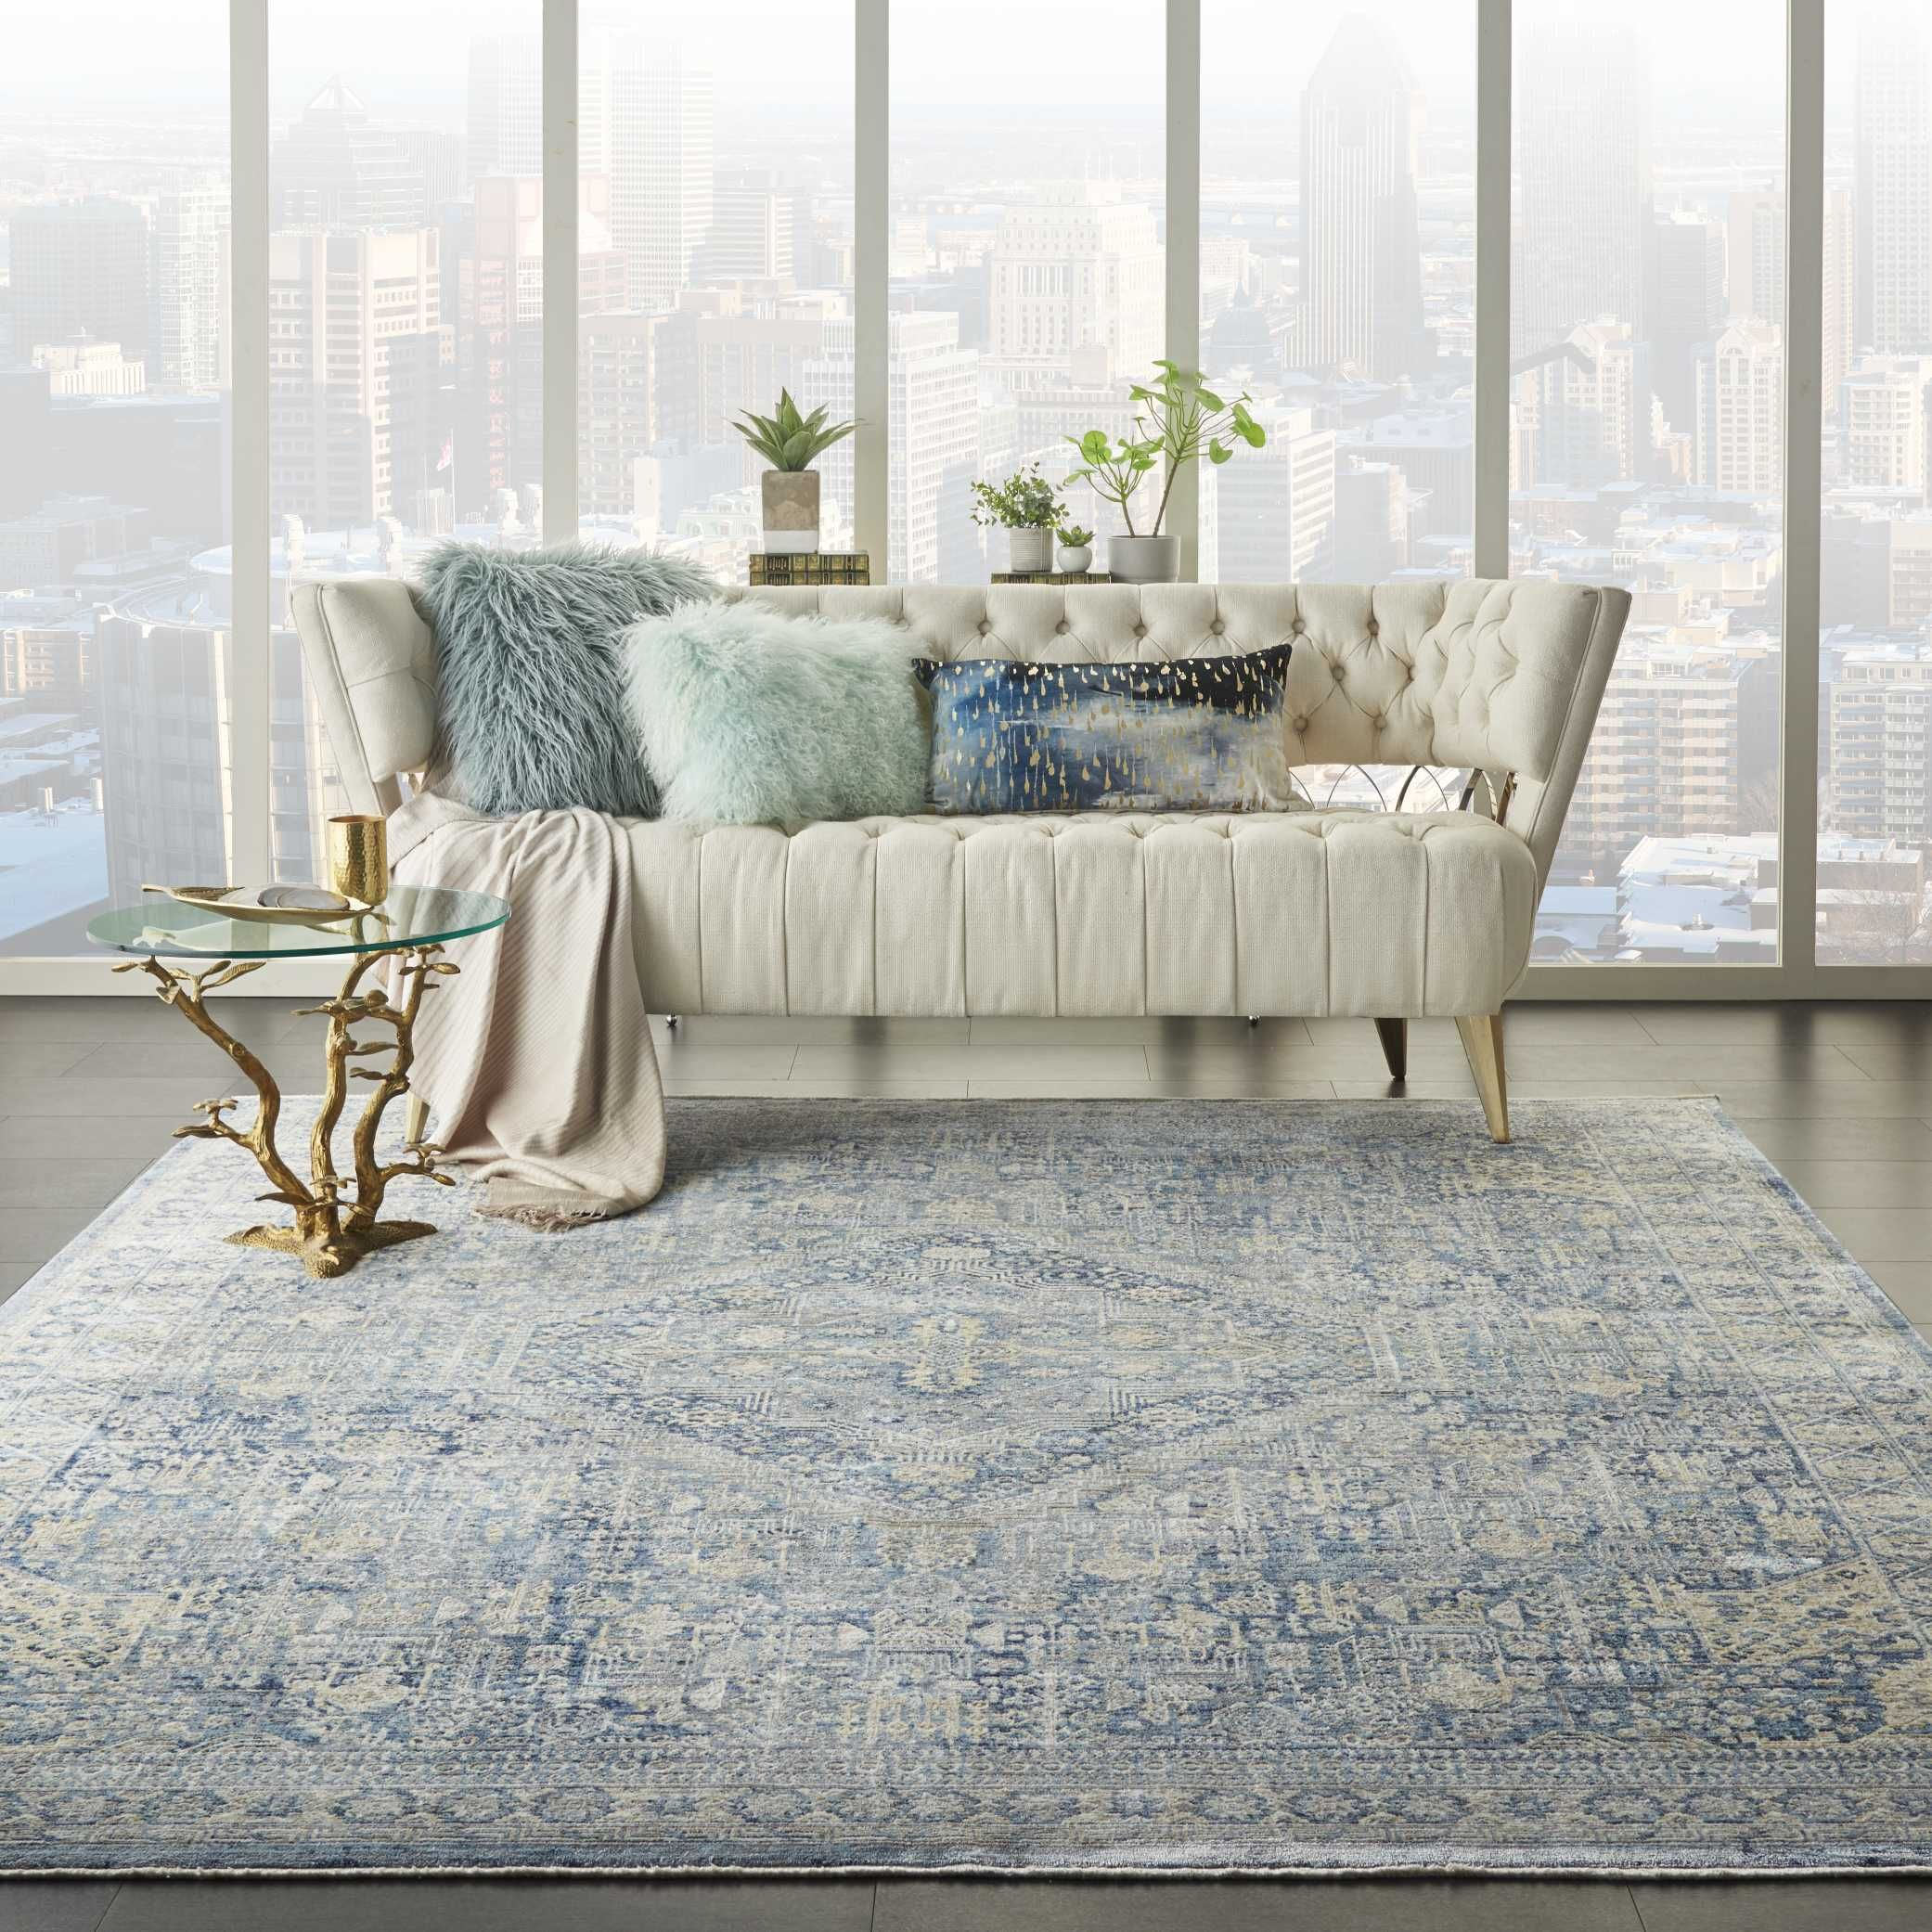 Lustrous Weave Luw02 Blue Ivory In 2020 Home Decor Area Rugs